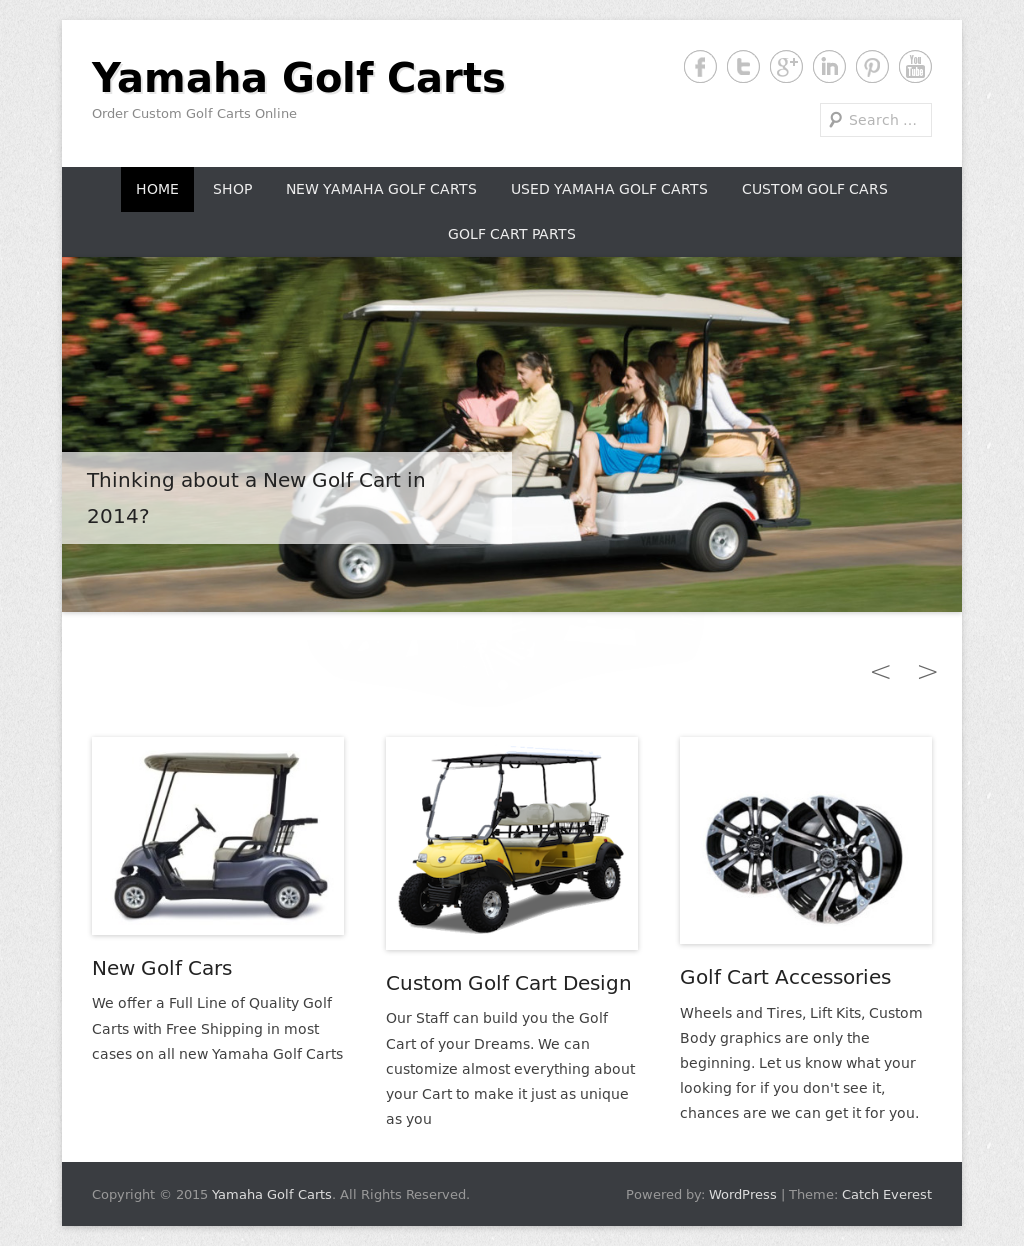 Yamaha Golf Carts Competitors, Revenue and Employees - Owler